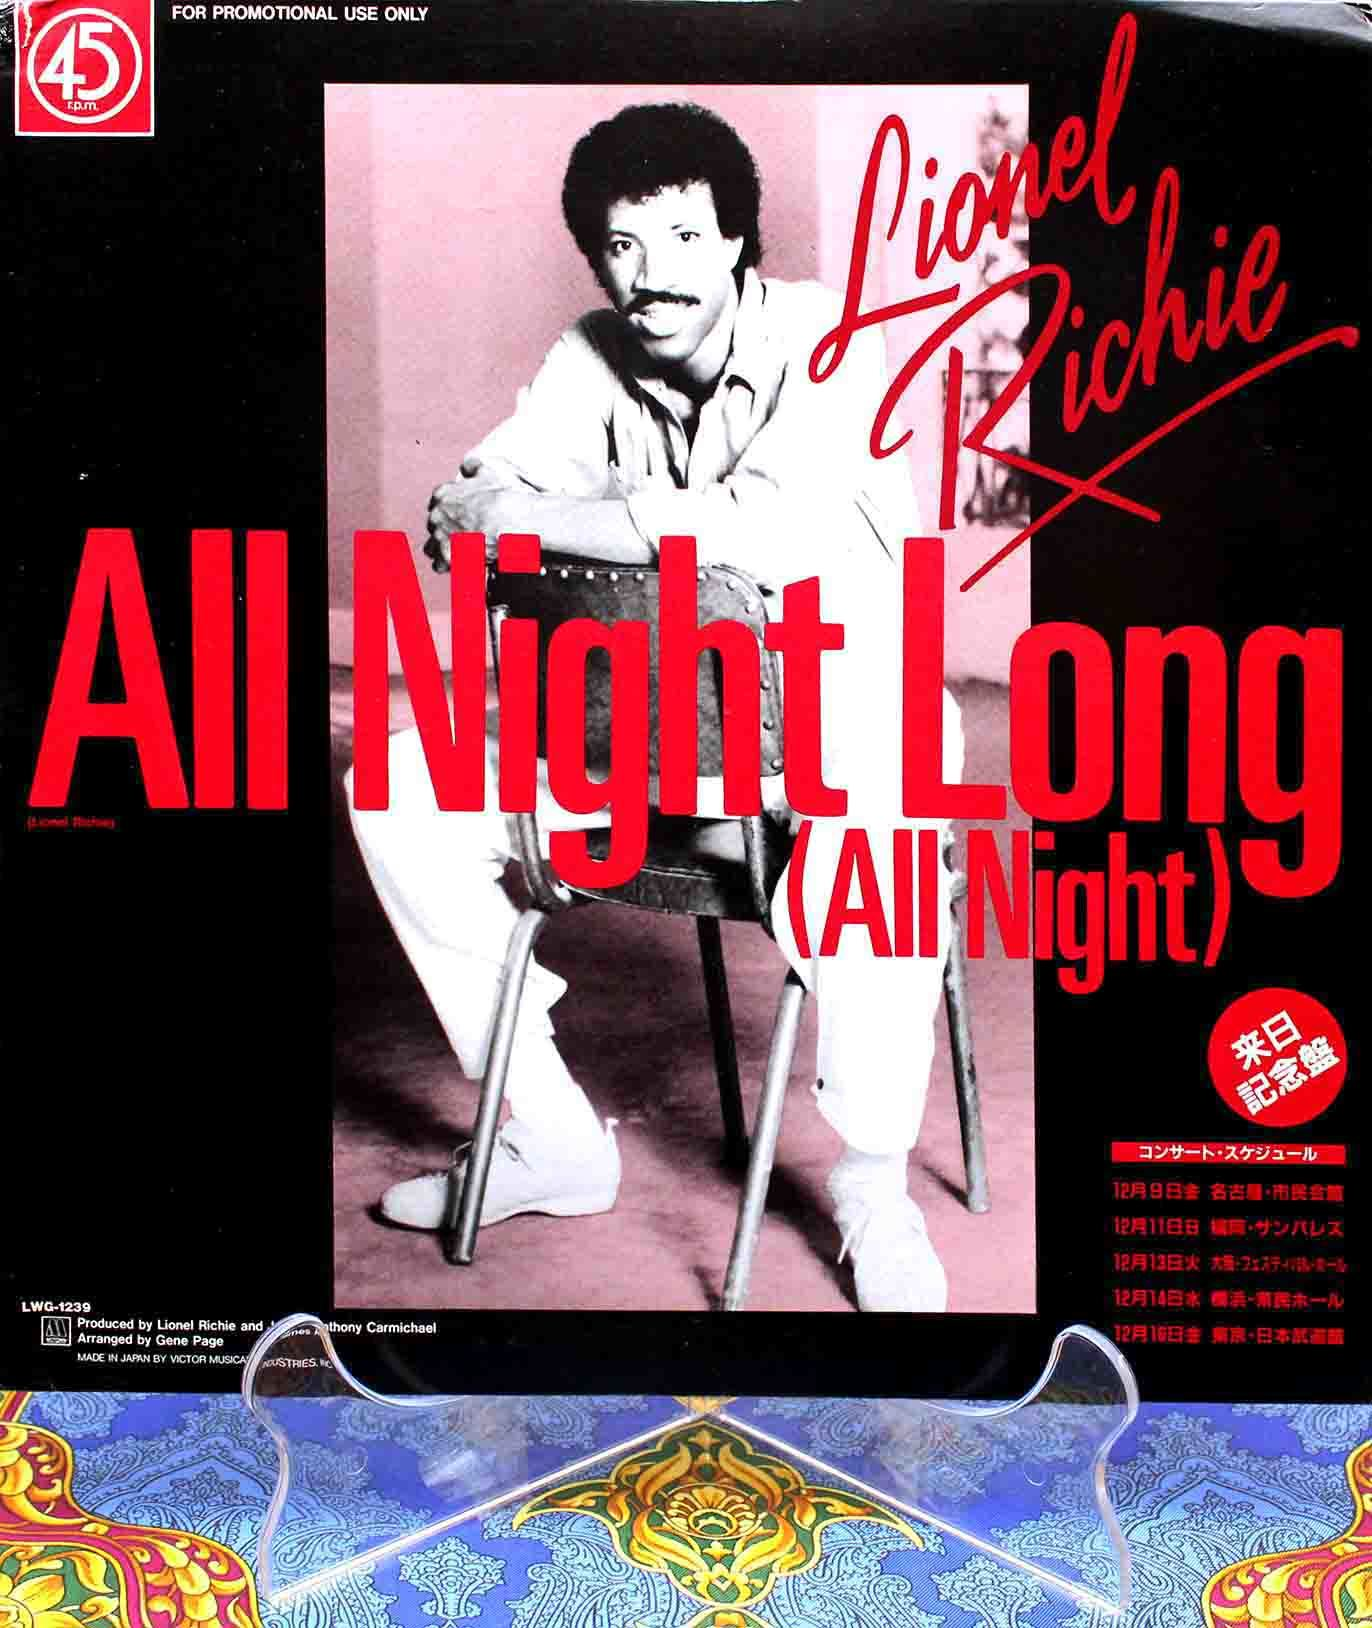 Lionel Richie all night long 01